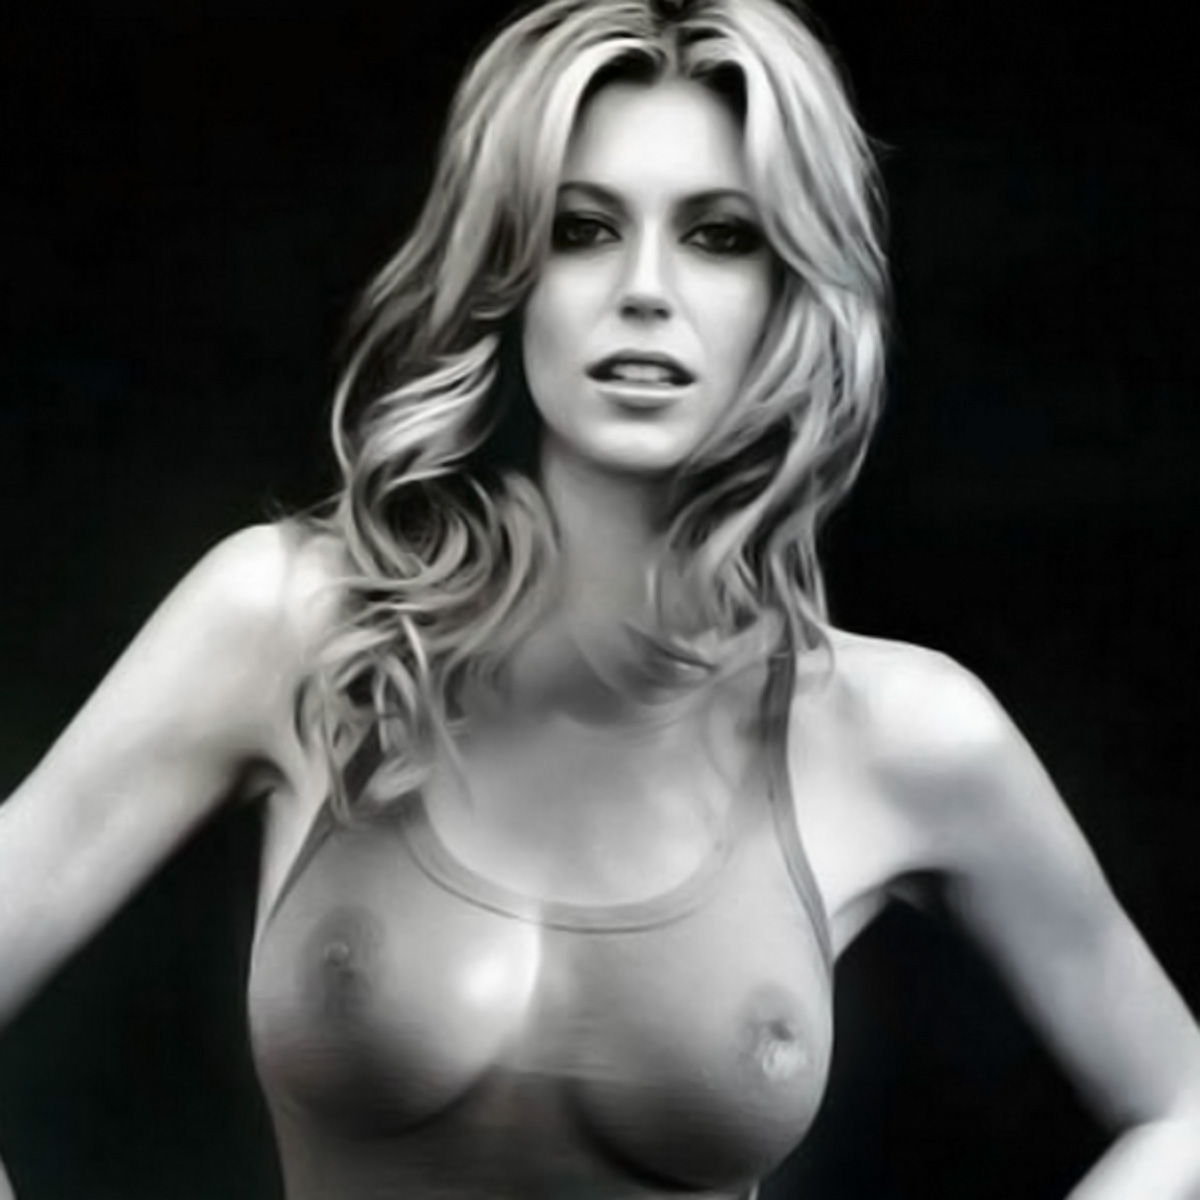 Diora baird's stunning proportions porn pic